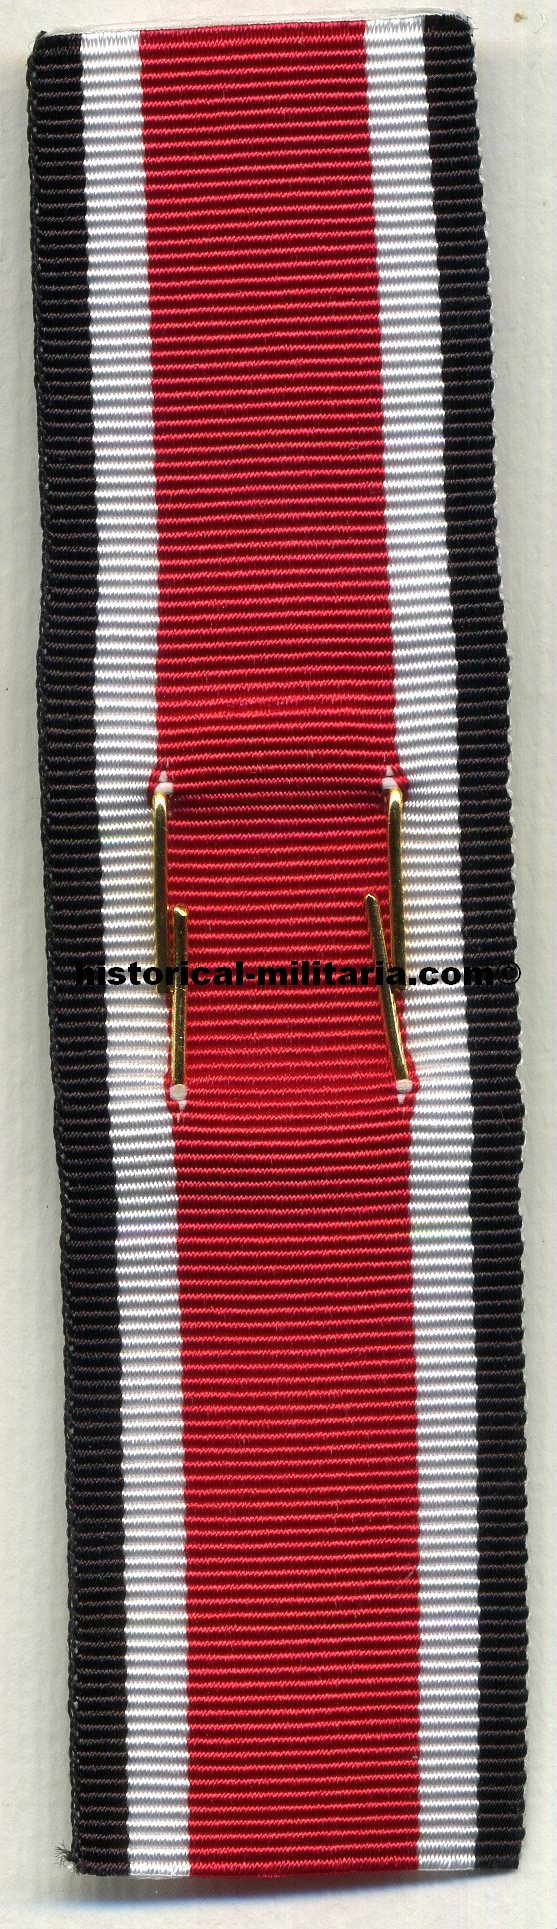 Ehrenblattspange des Heeres - Honour Roll Clasp of the German Army - L'Agrafe de la Liste d'honeur - Distintivo d'onore dell'esercito tedesco